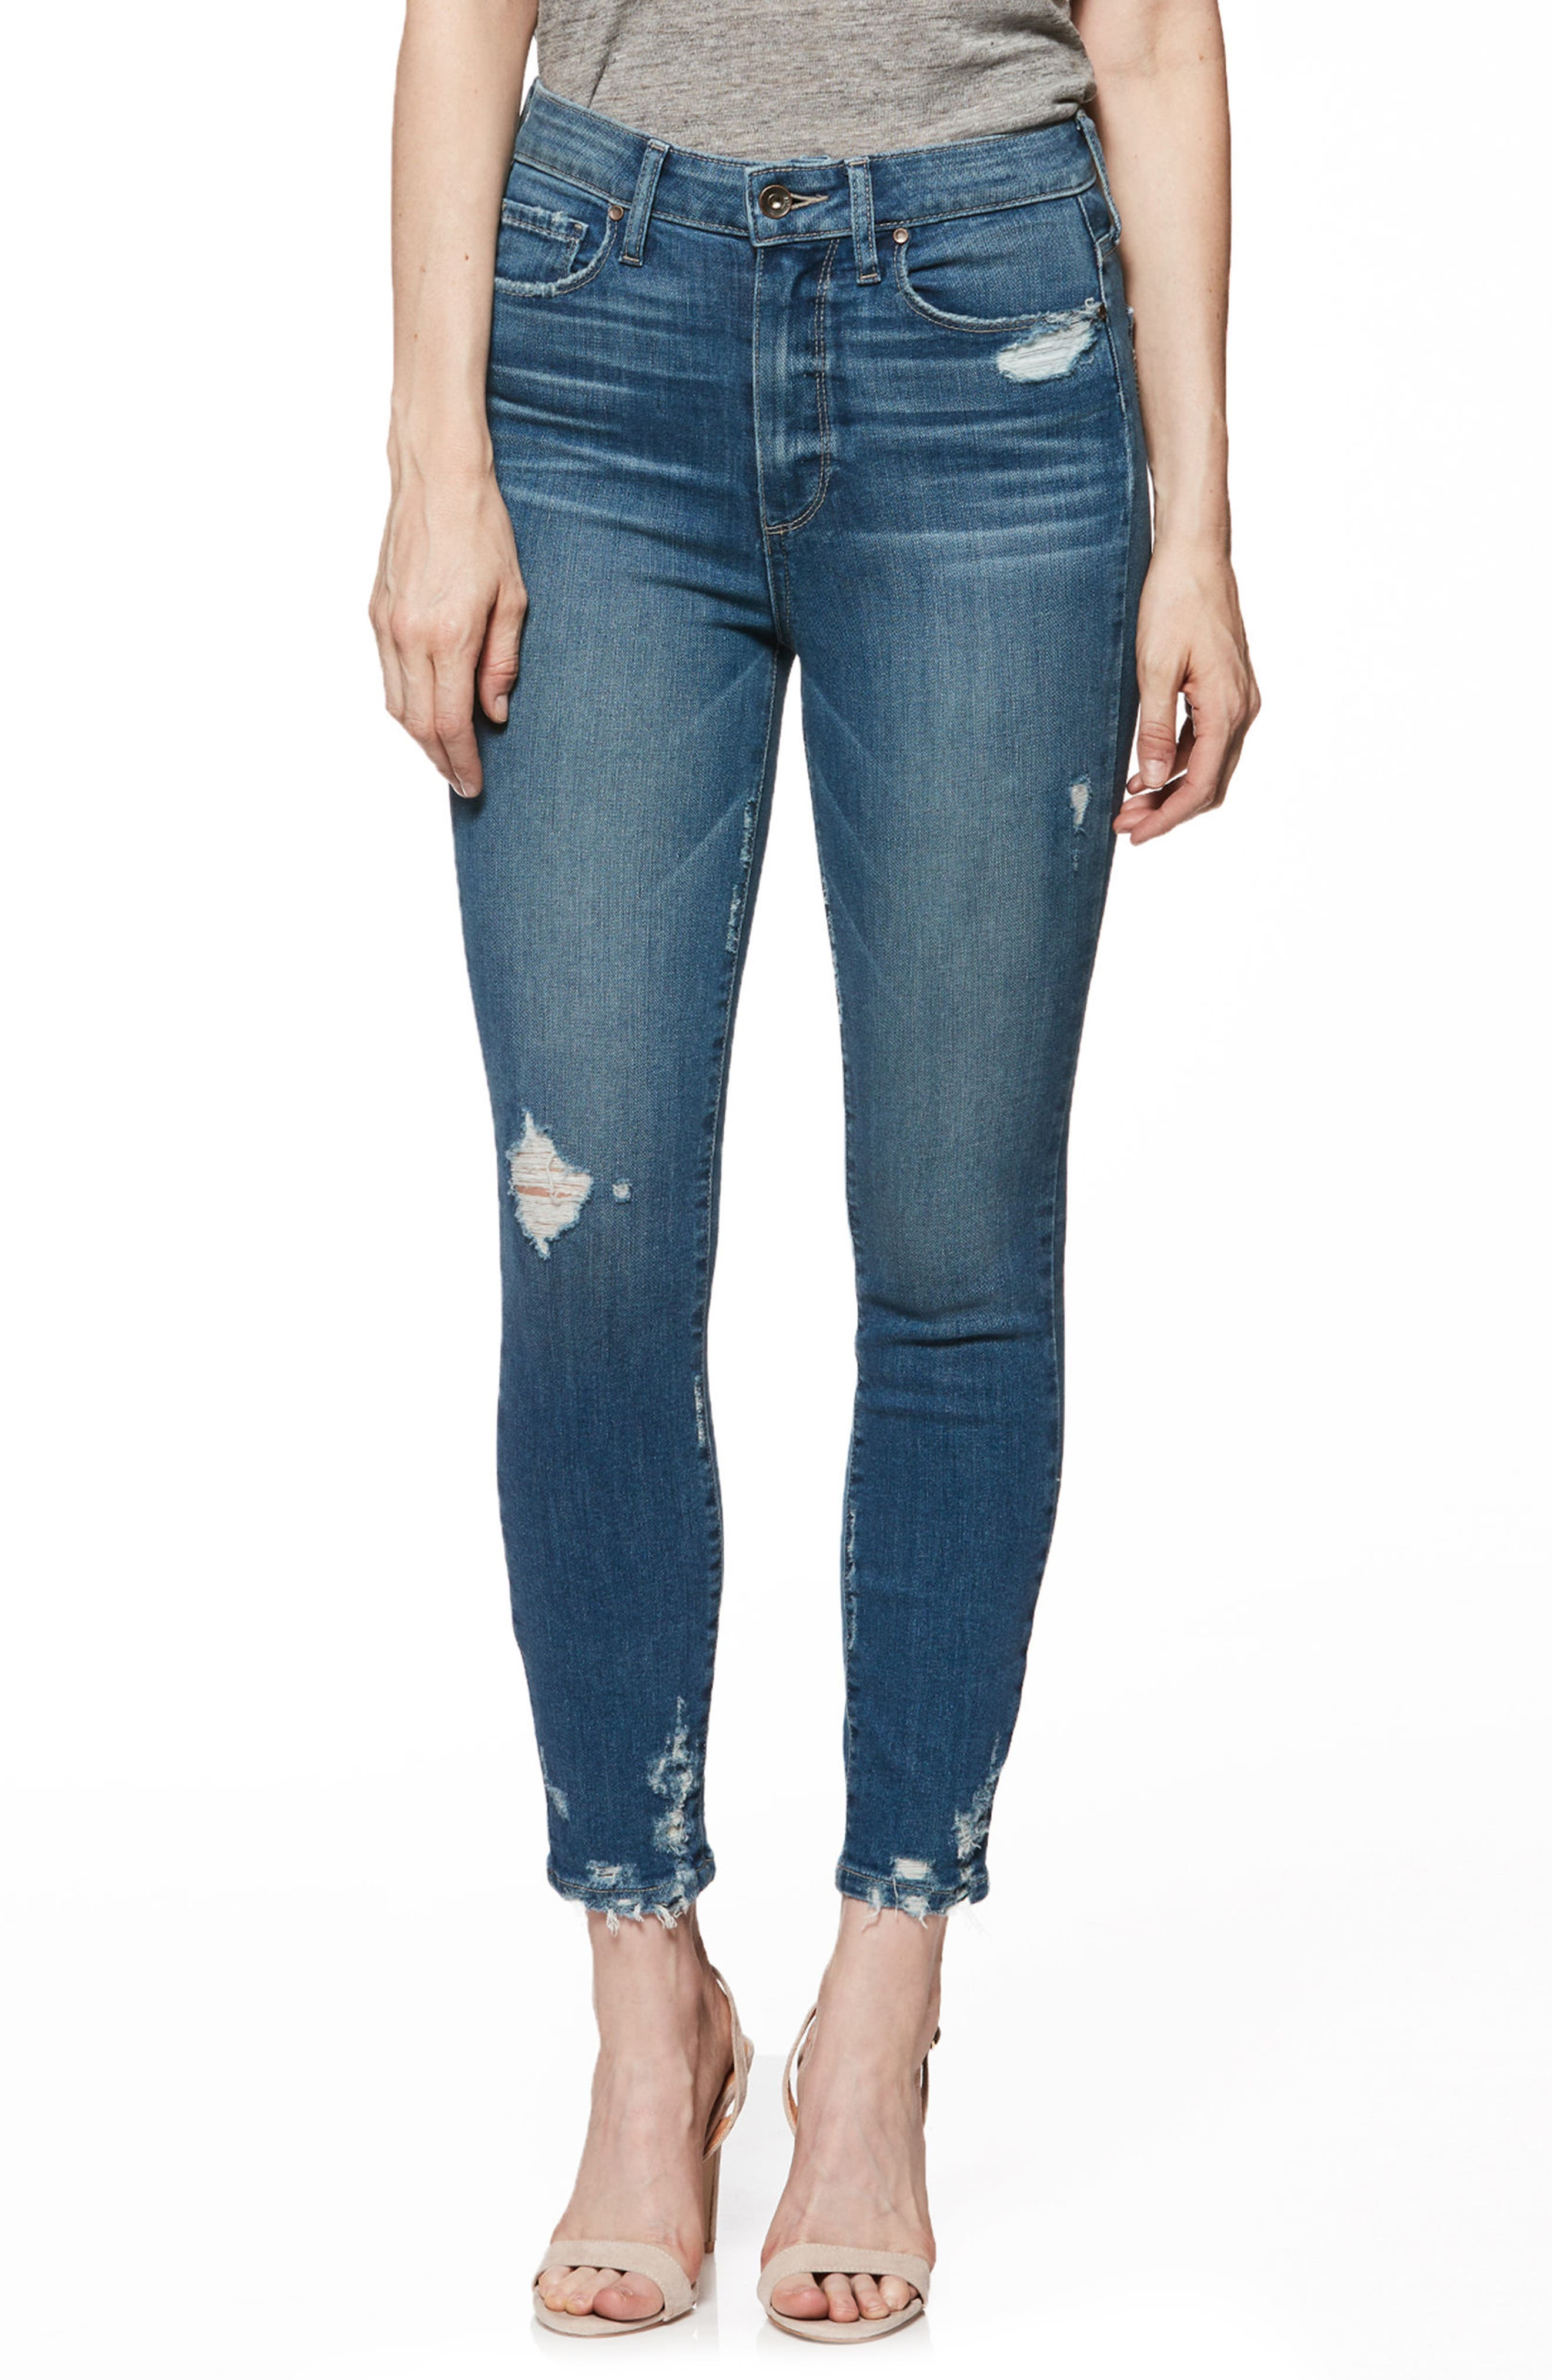 Transcend Vintage - Margot High Waist Crop Skinny Jeans,                         Main,                         color, 400